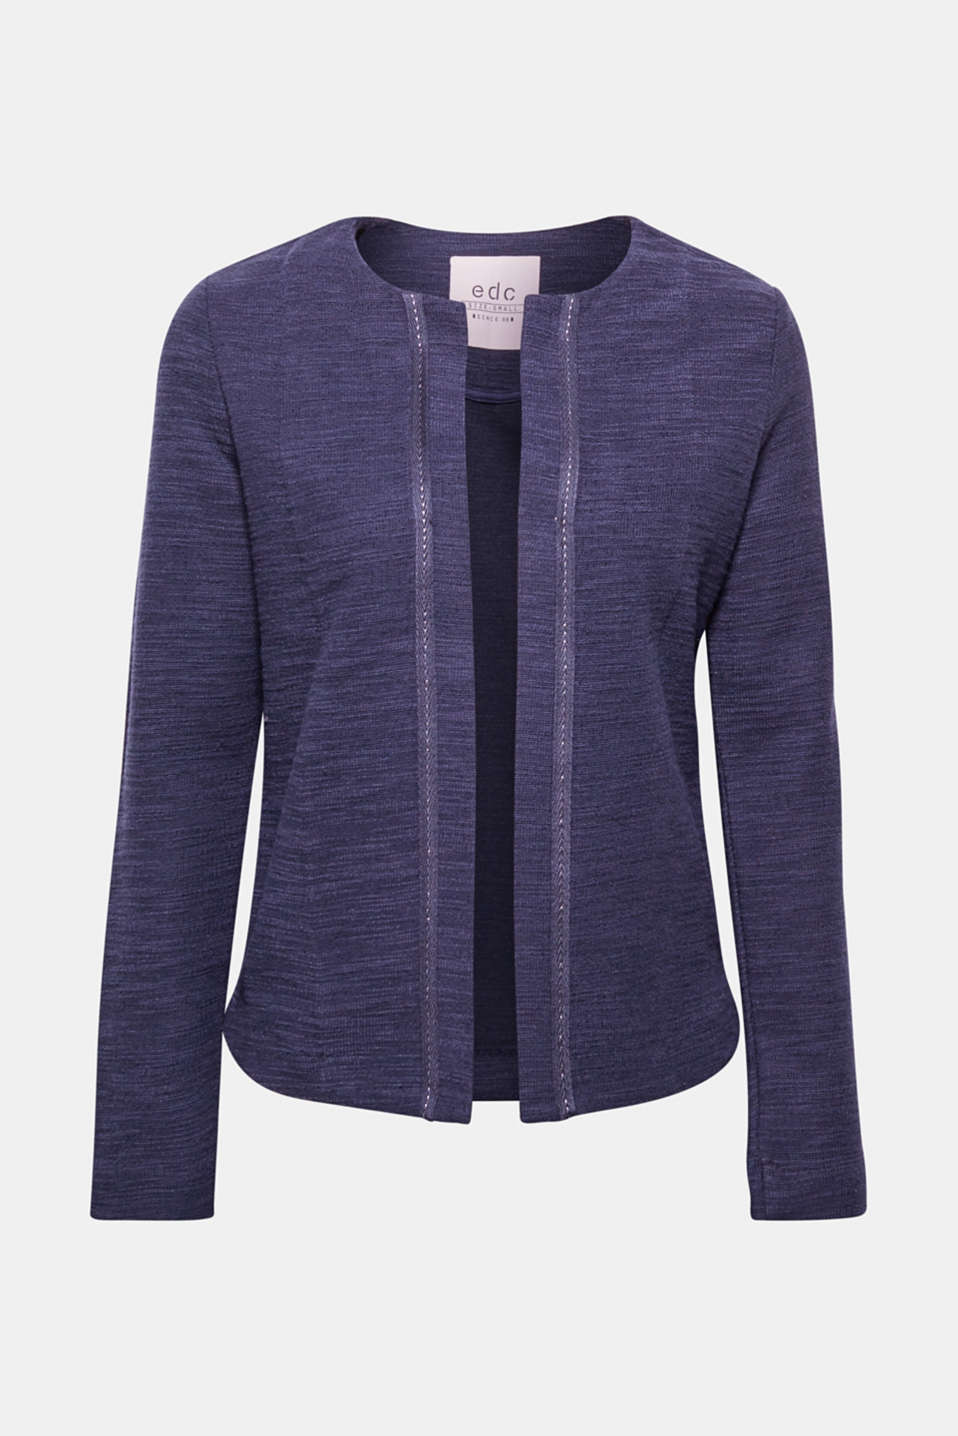 This soft jacket with a bouclé texture and accentuating, woven tape piping is a fantastic alternative to a cardigan.